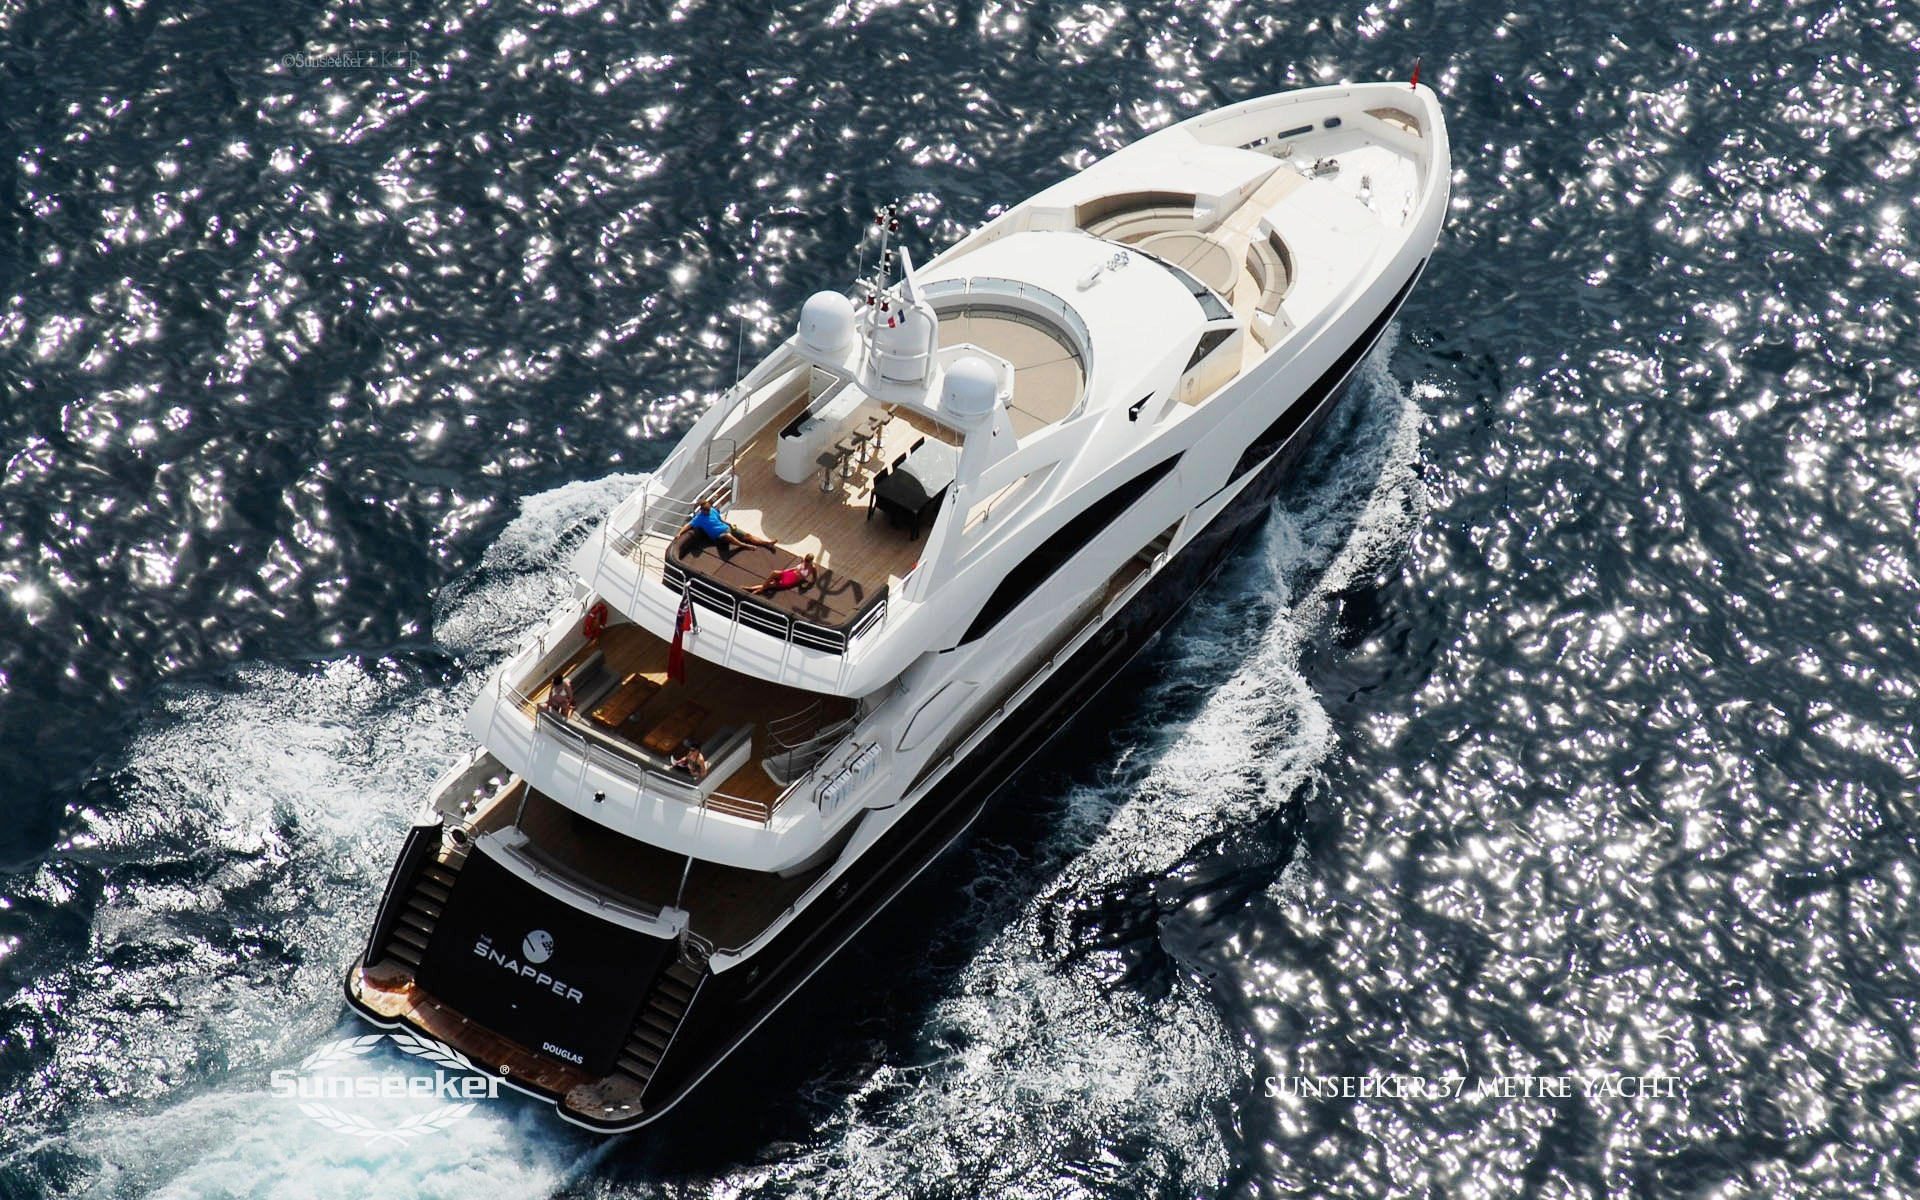 Here is a wallpaper from sunseeker luxury motor yachts.